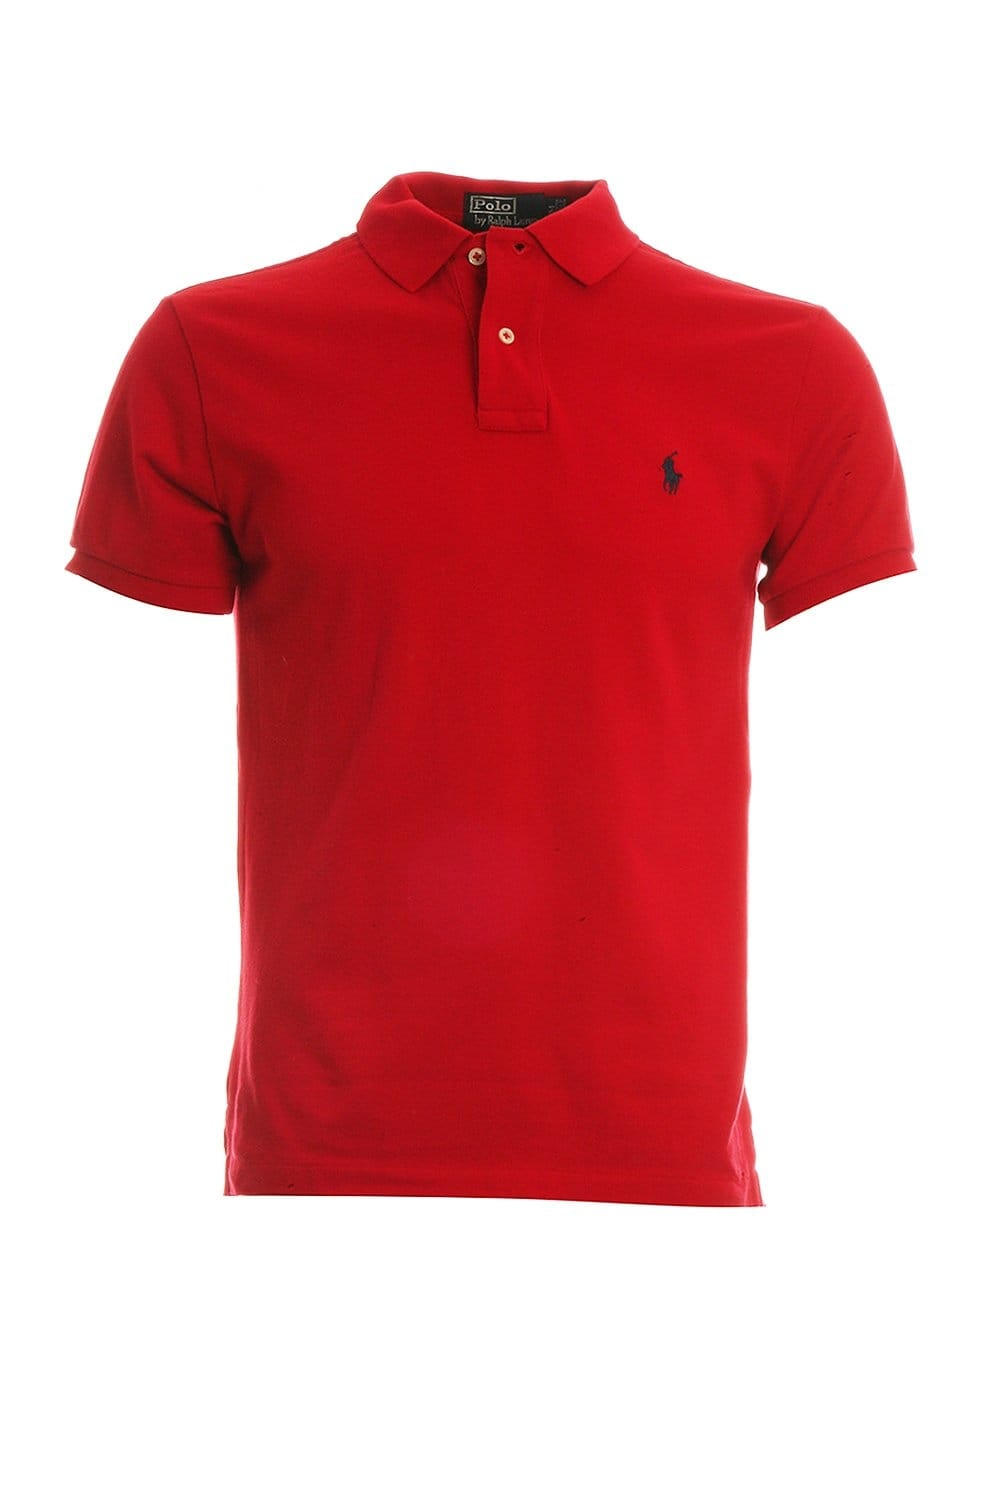 ralph lauren polo tee shirts